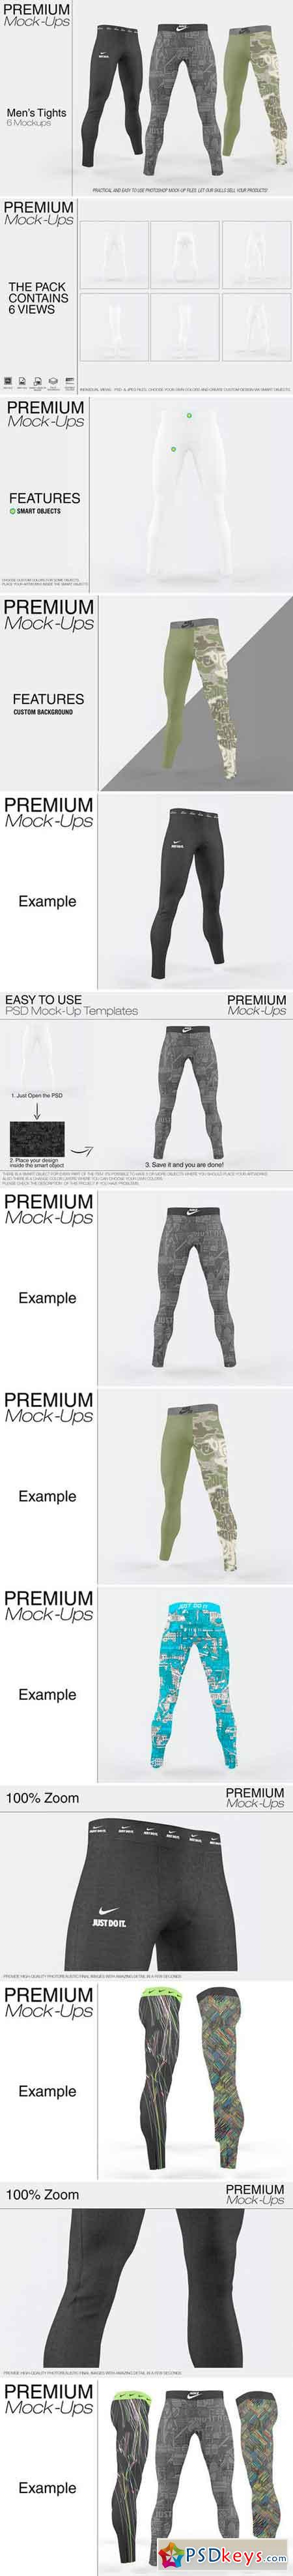 Men's Tights Mockup 2382241